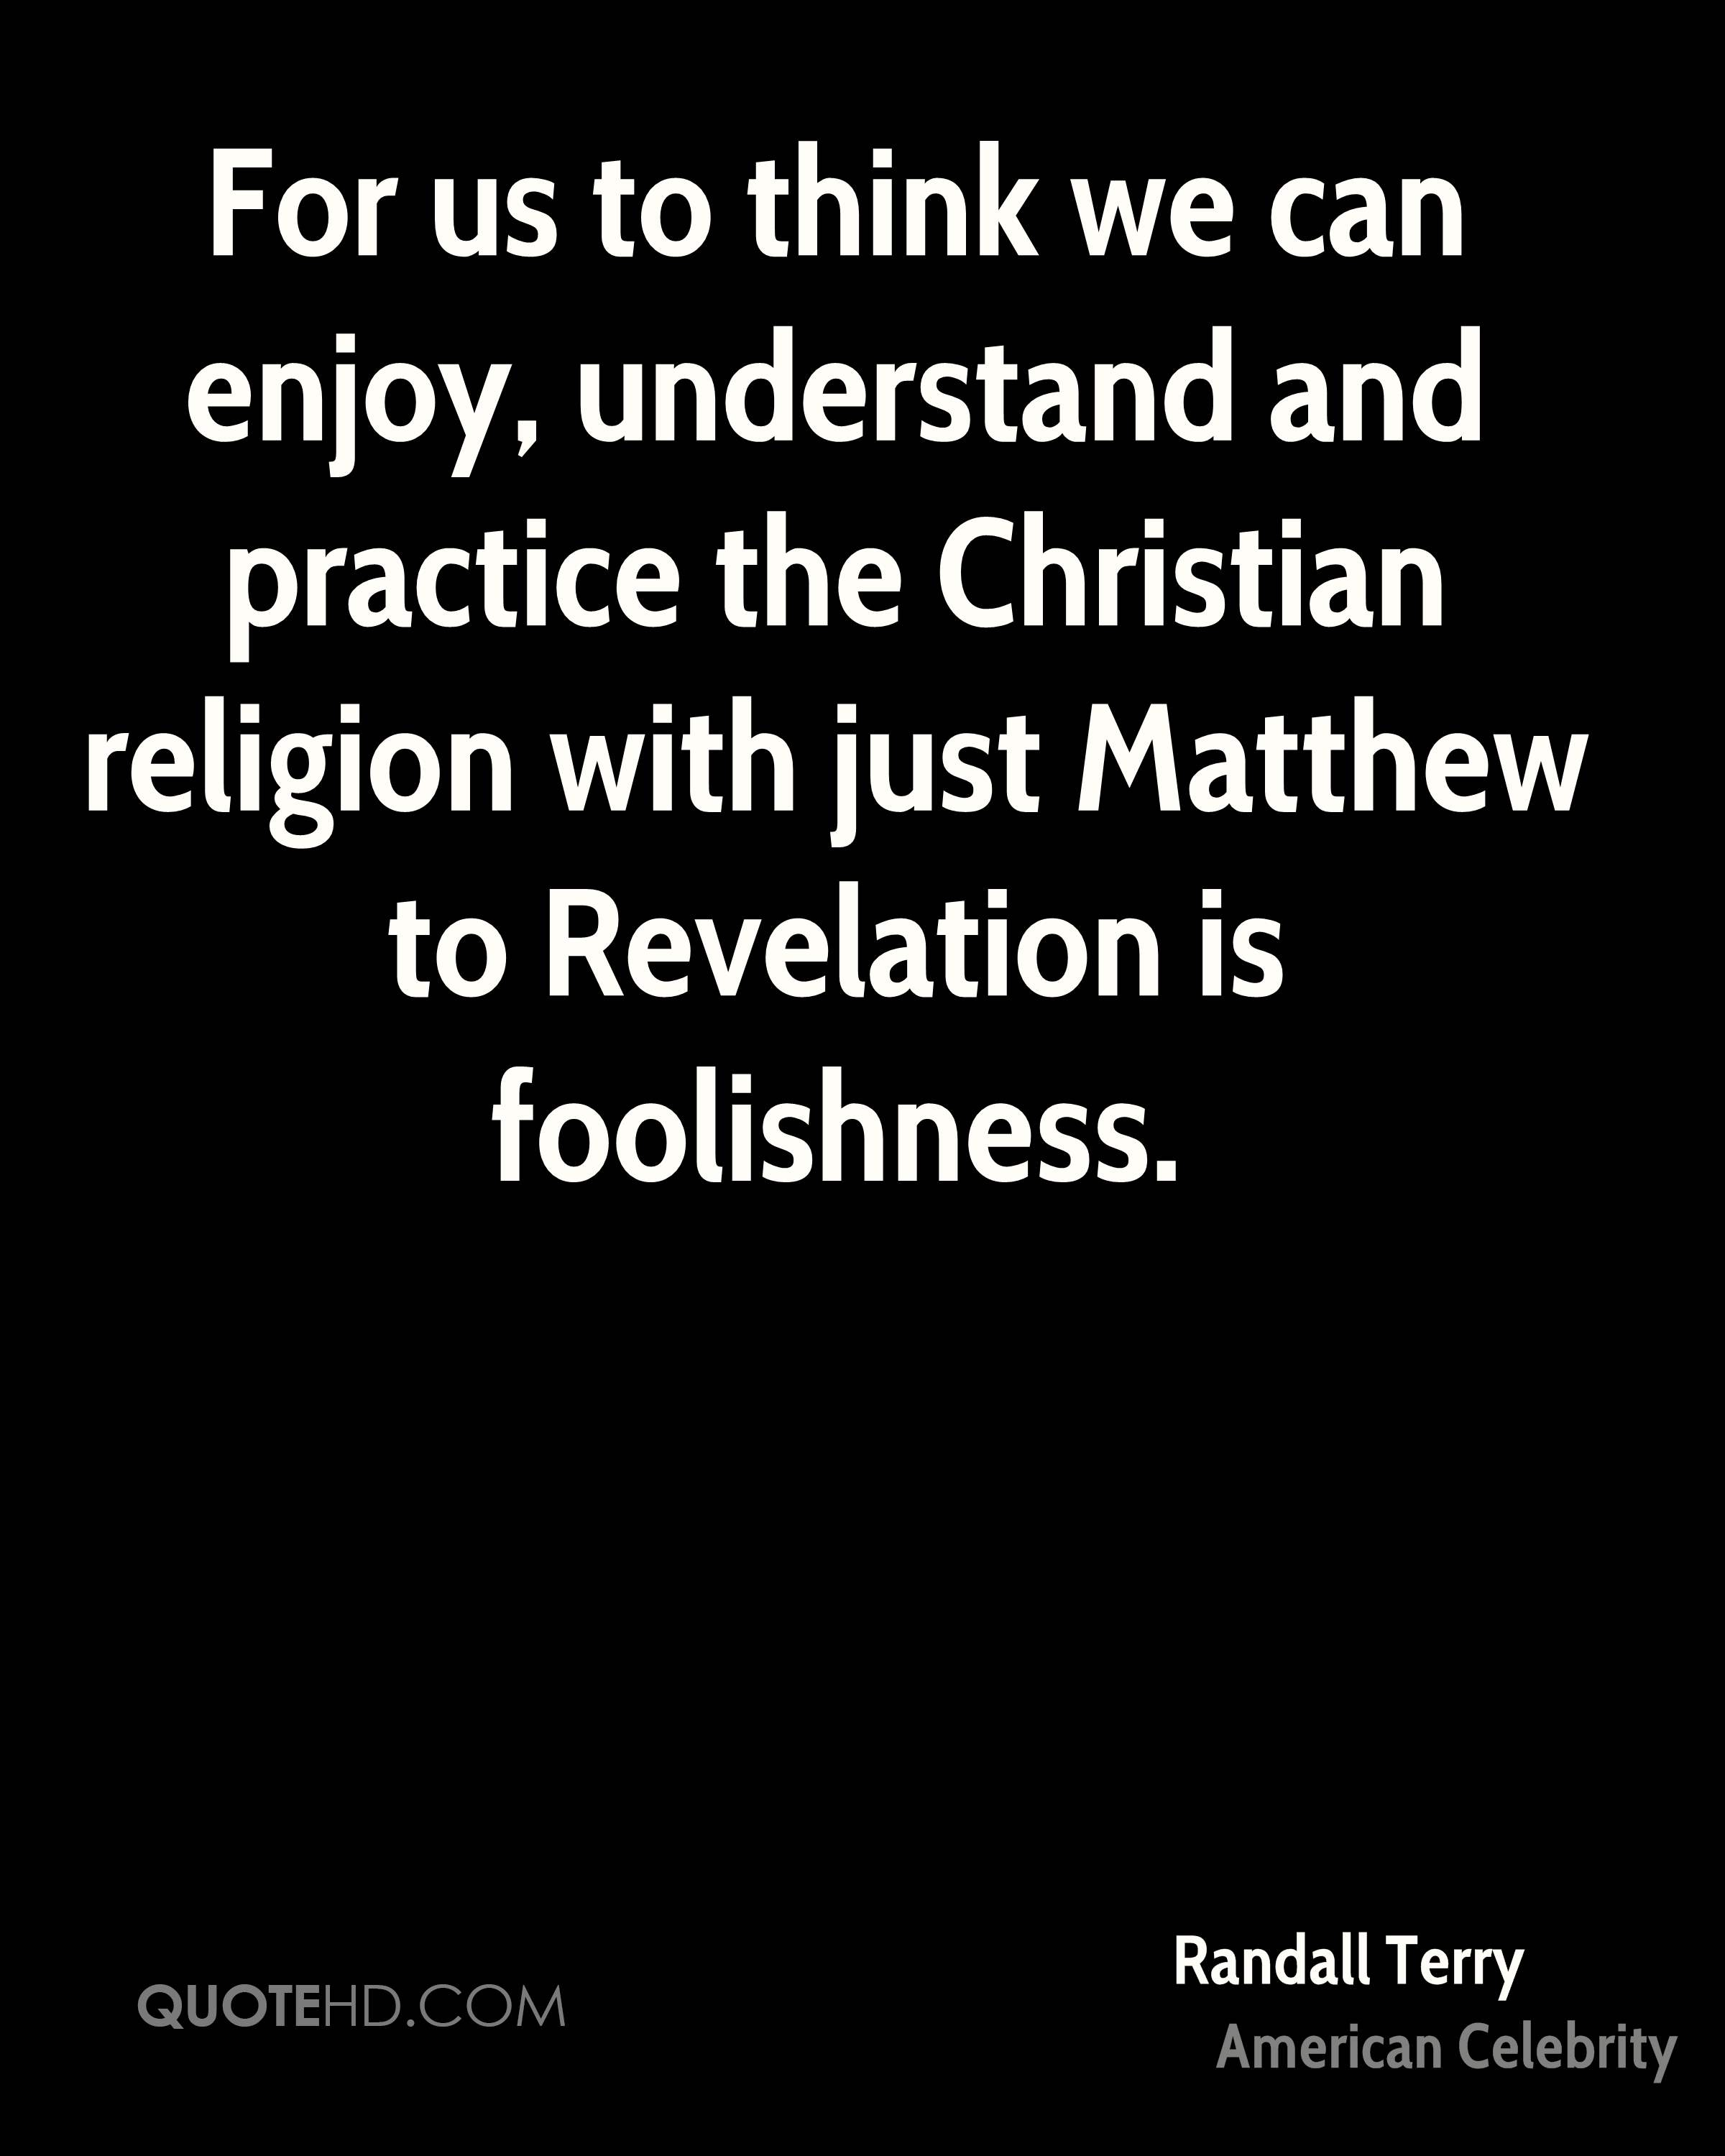 For us to think we can enjoy, understand and practice the Christian religion with just Matthew to Revelation is foolishness.